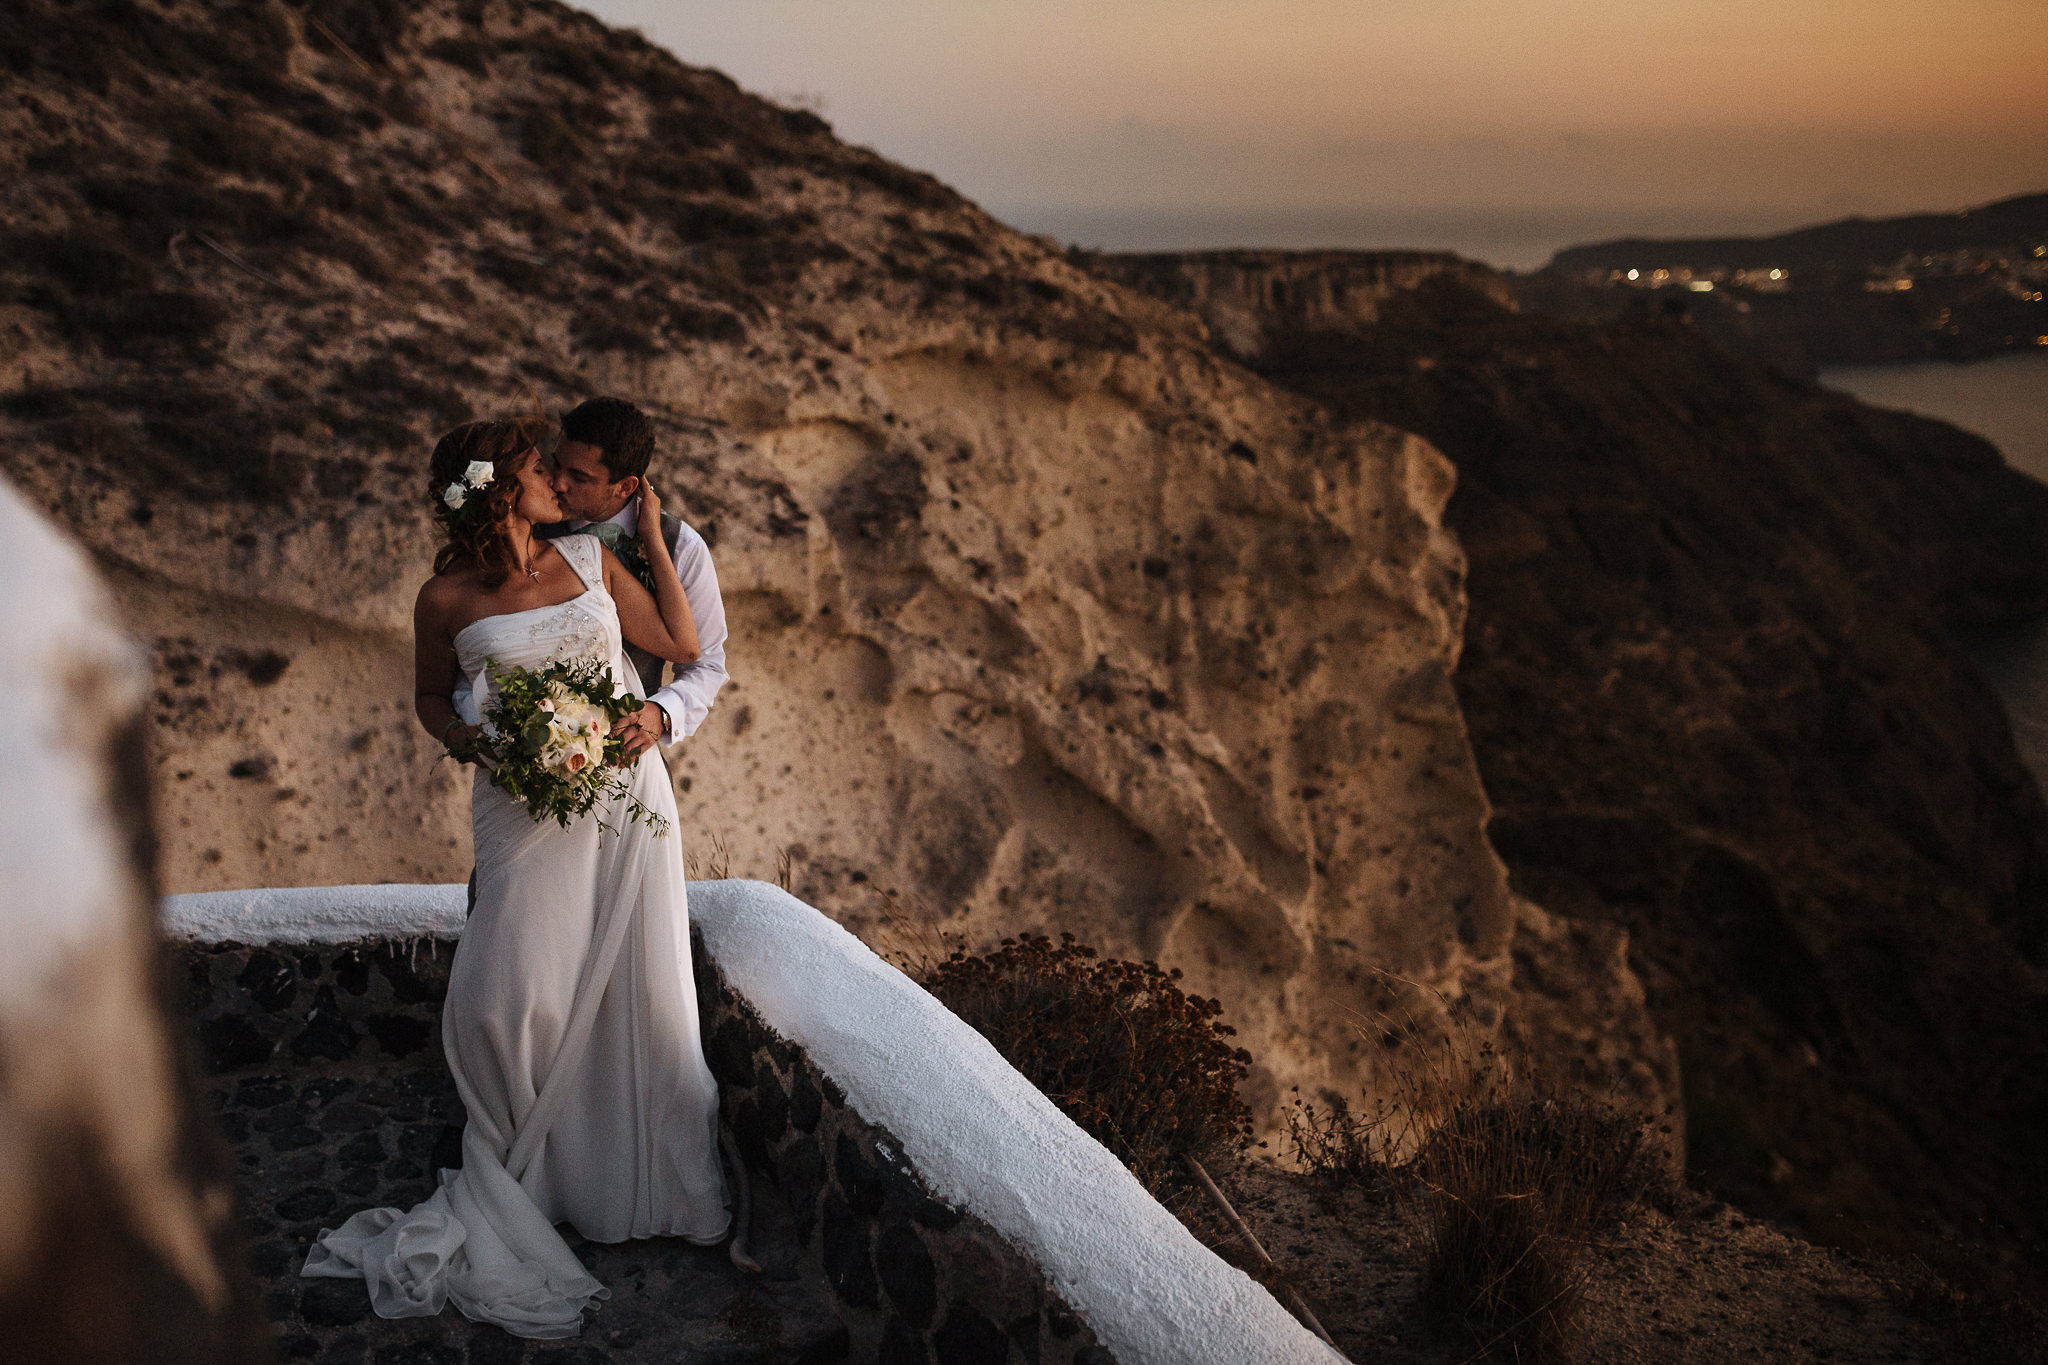 santorini-wedding-photographer-destination-90016